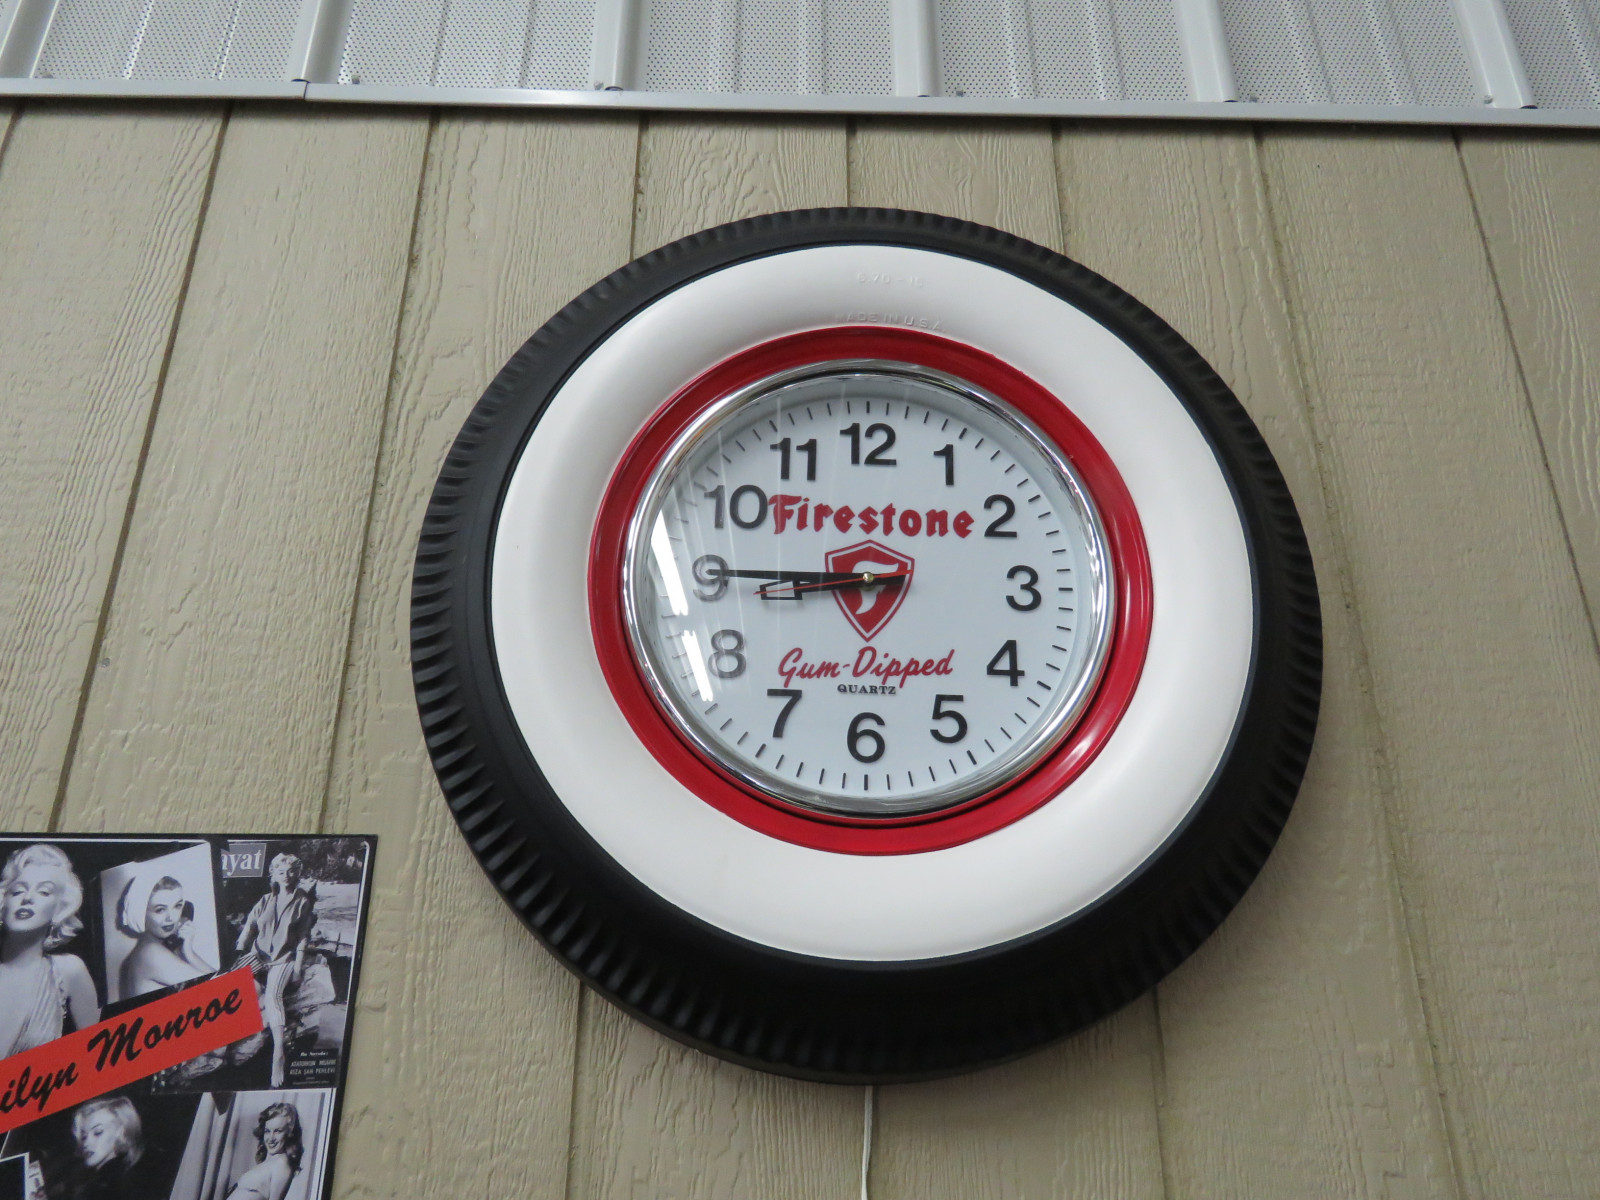 Firestone Tire Clock - Image 1